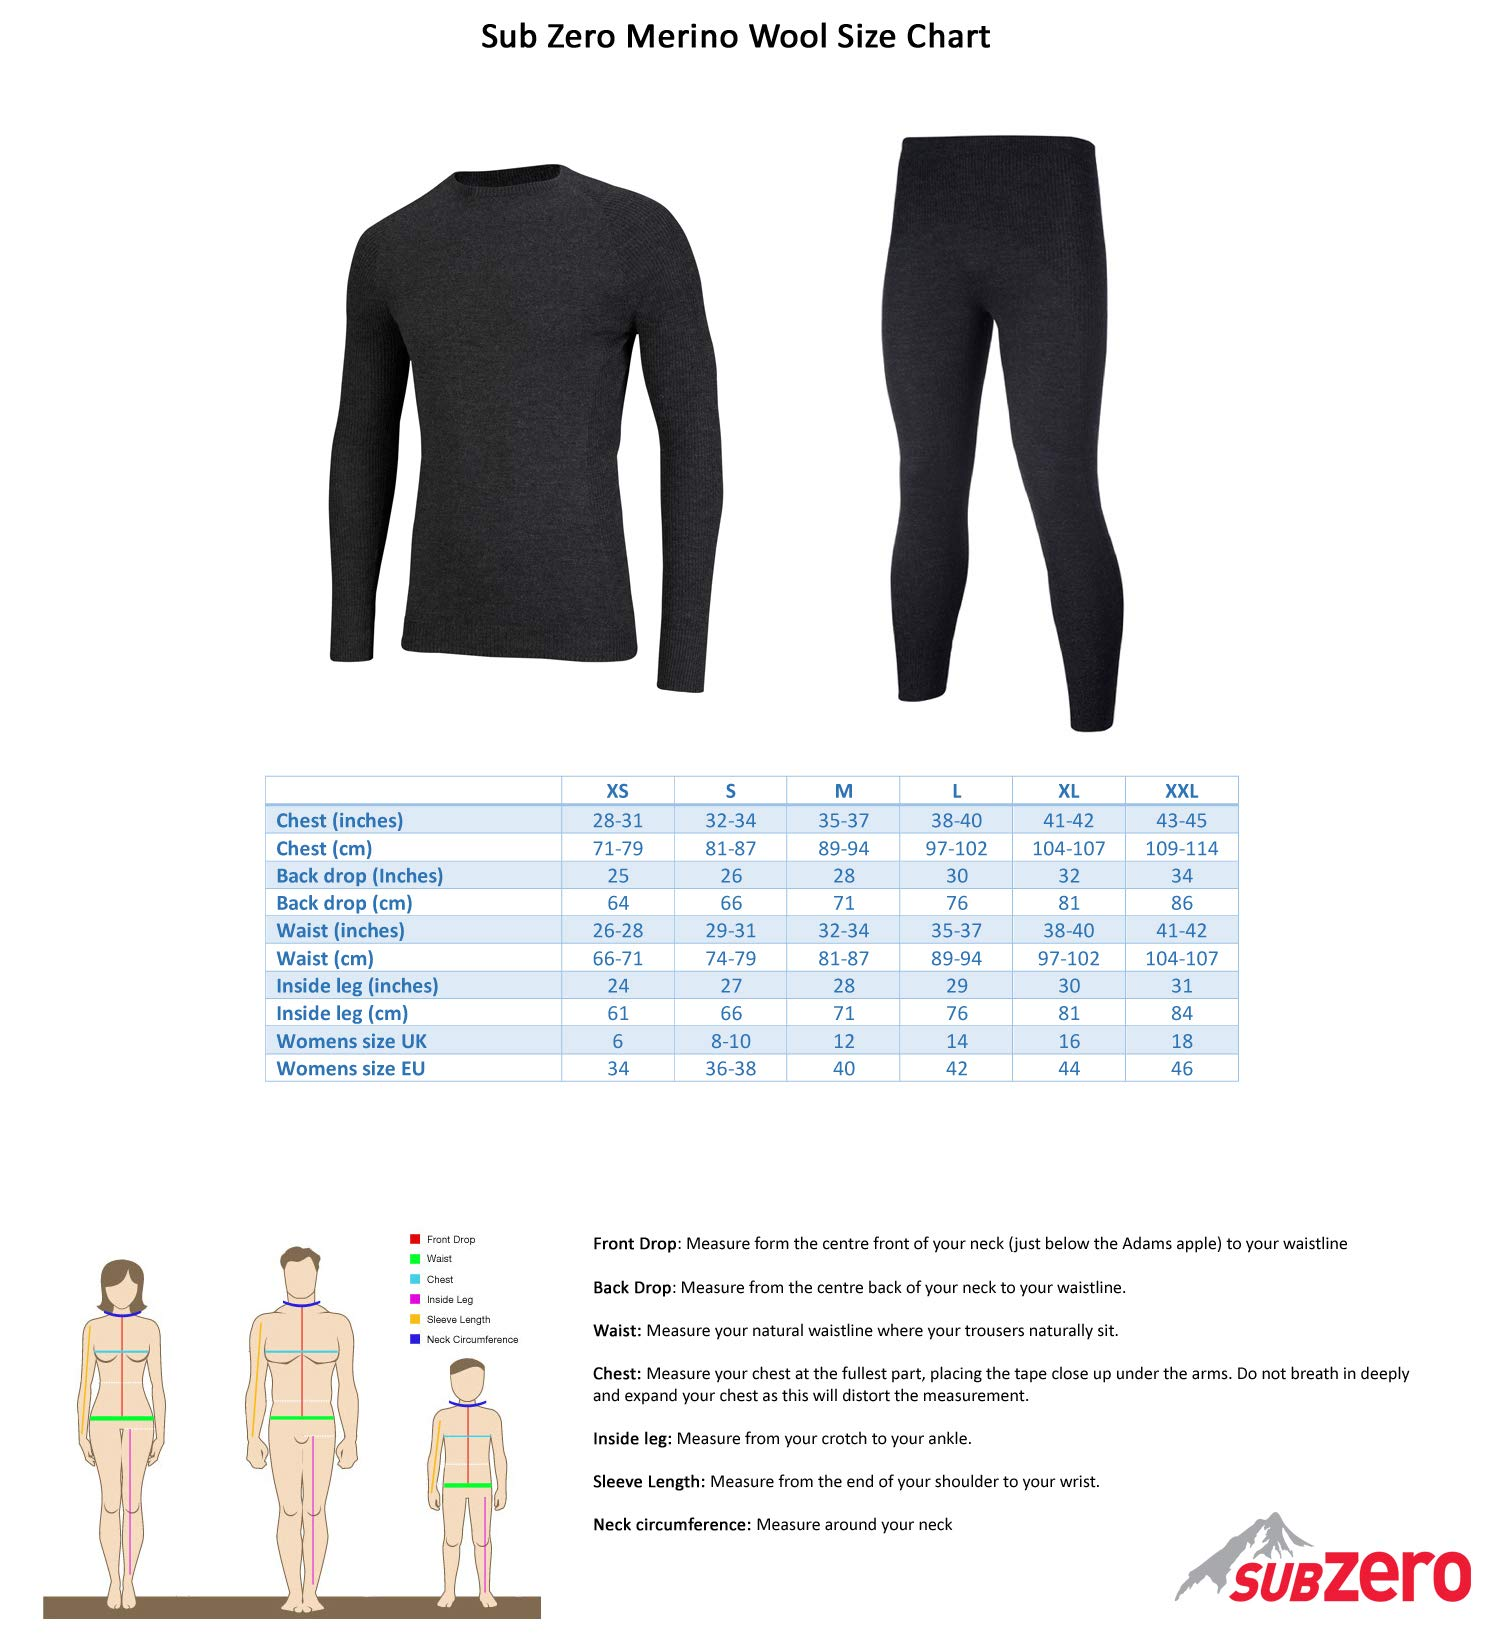 71TWc3K2pWL - SUB ZERO Mens Merino Wool Thermal Insulated Totally Seamless Mid Layer Long Sleeve Round Neck Top